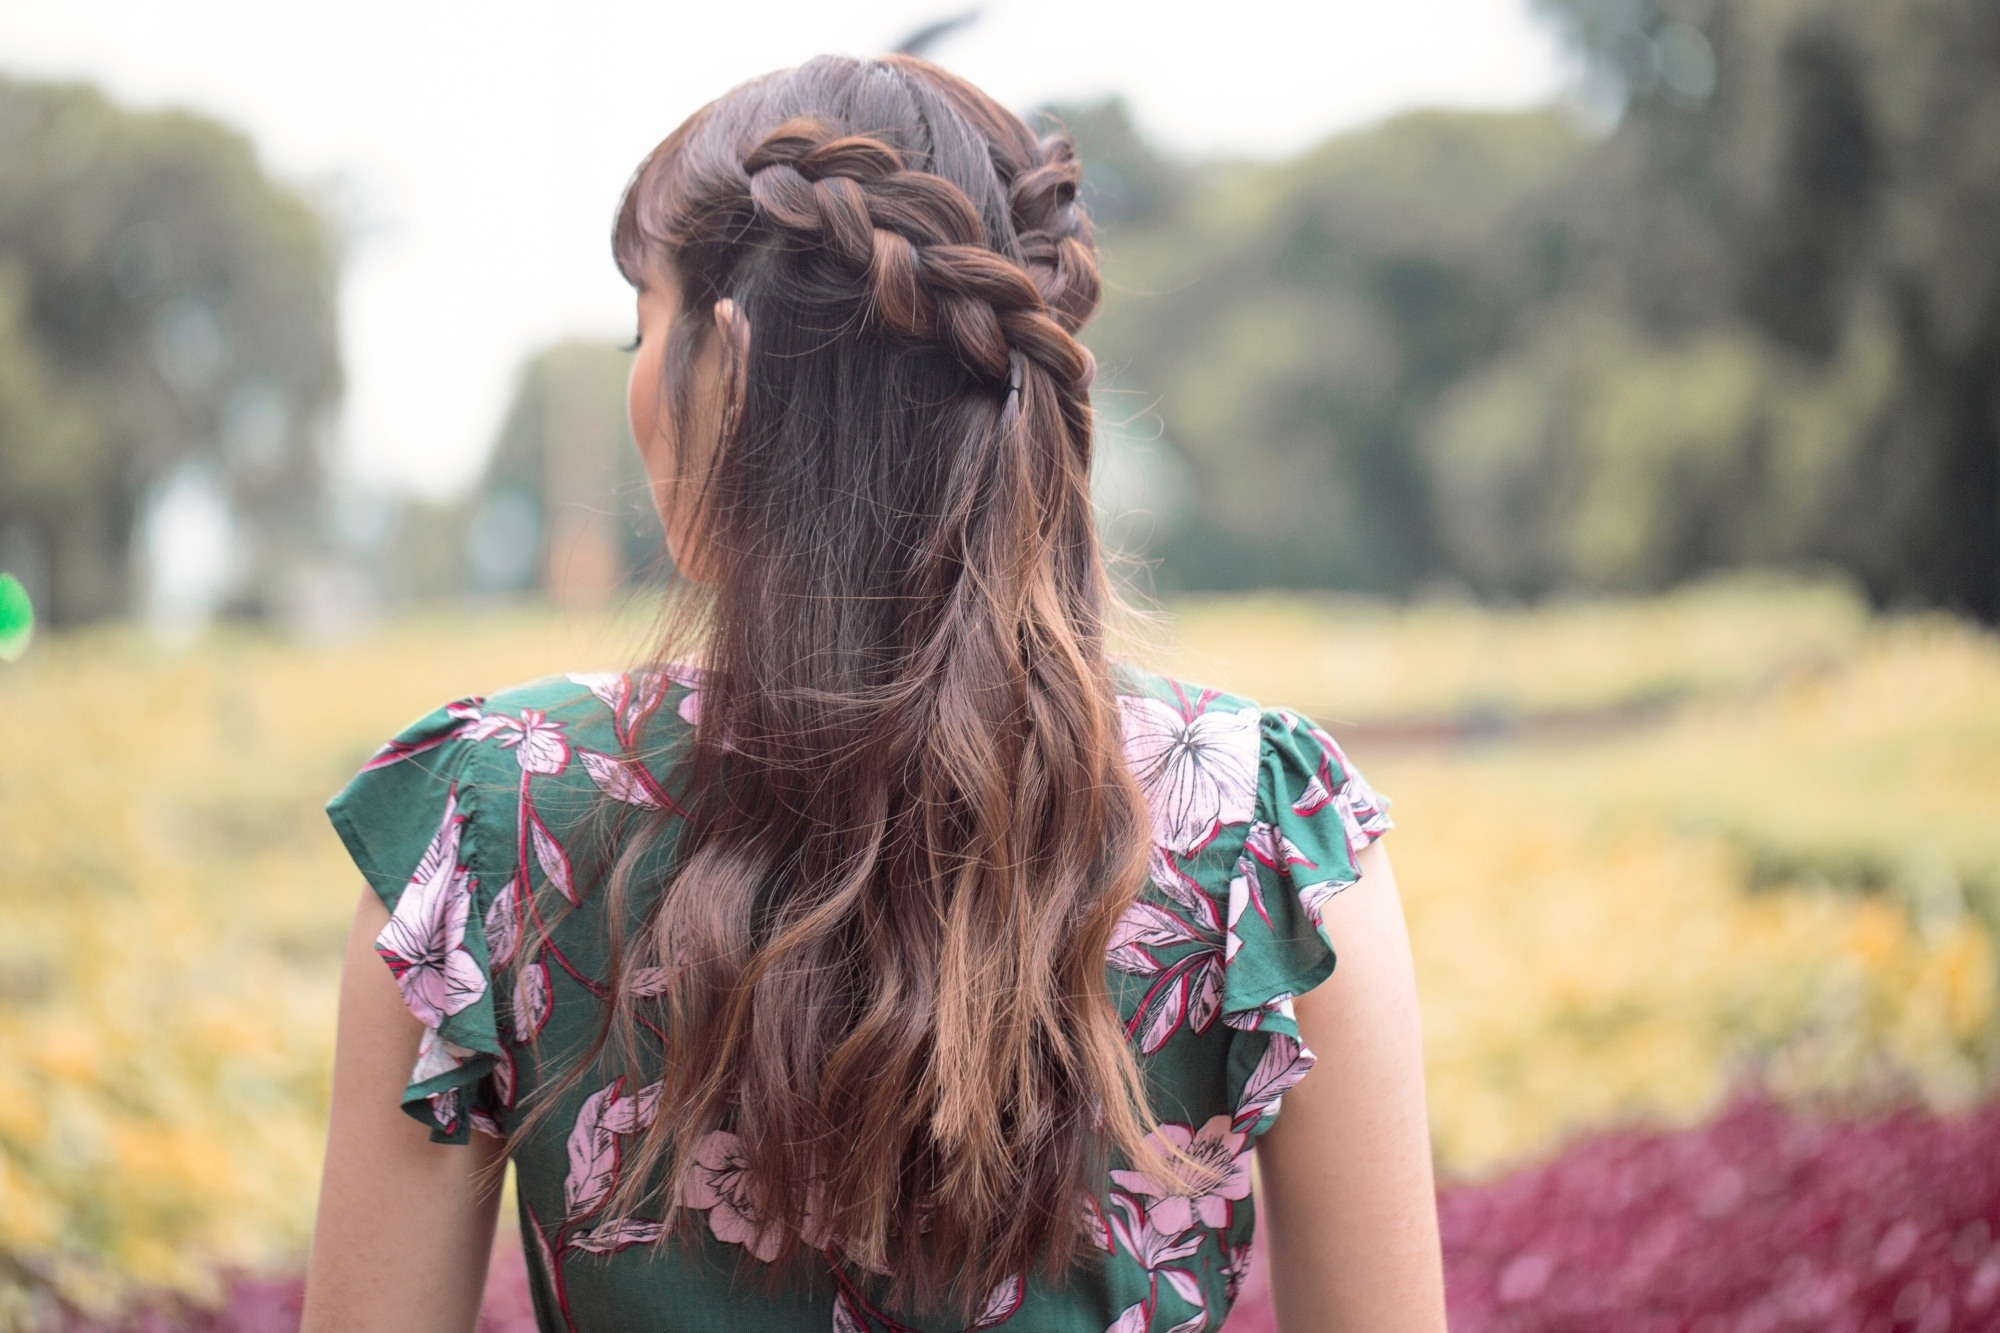 Bridal hairstyle: Back shot of an Asian woman with long dark hair in half up boho braid wearing a dress outdoors